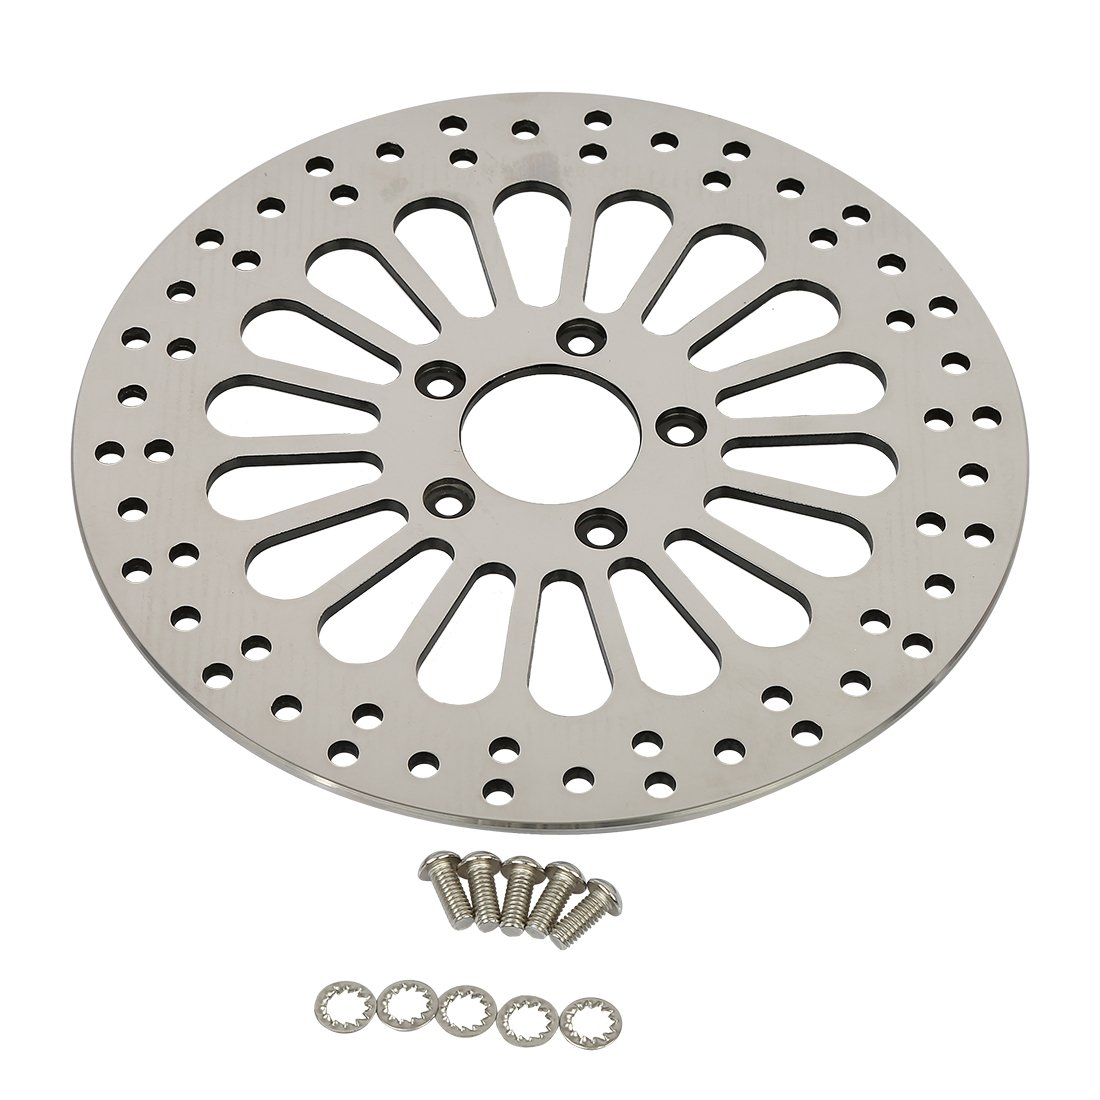 SHARKROAD 11.8'' Front Brake Rotors and Bolts Set Disc Super Spoke Polished 2008-2013 Harley Touring